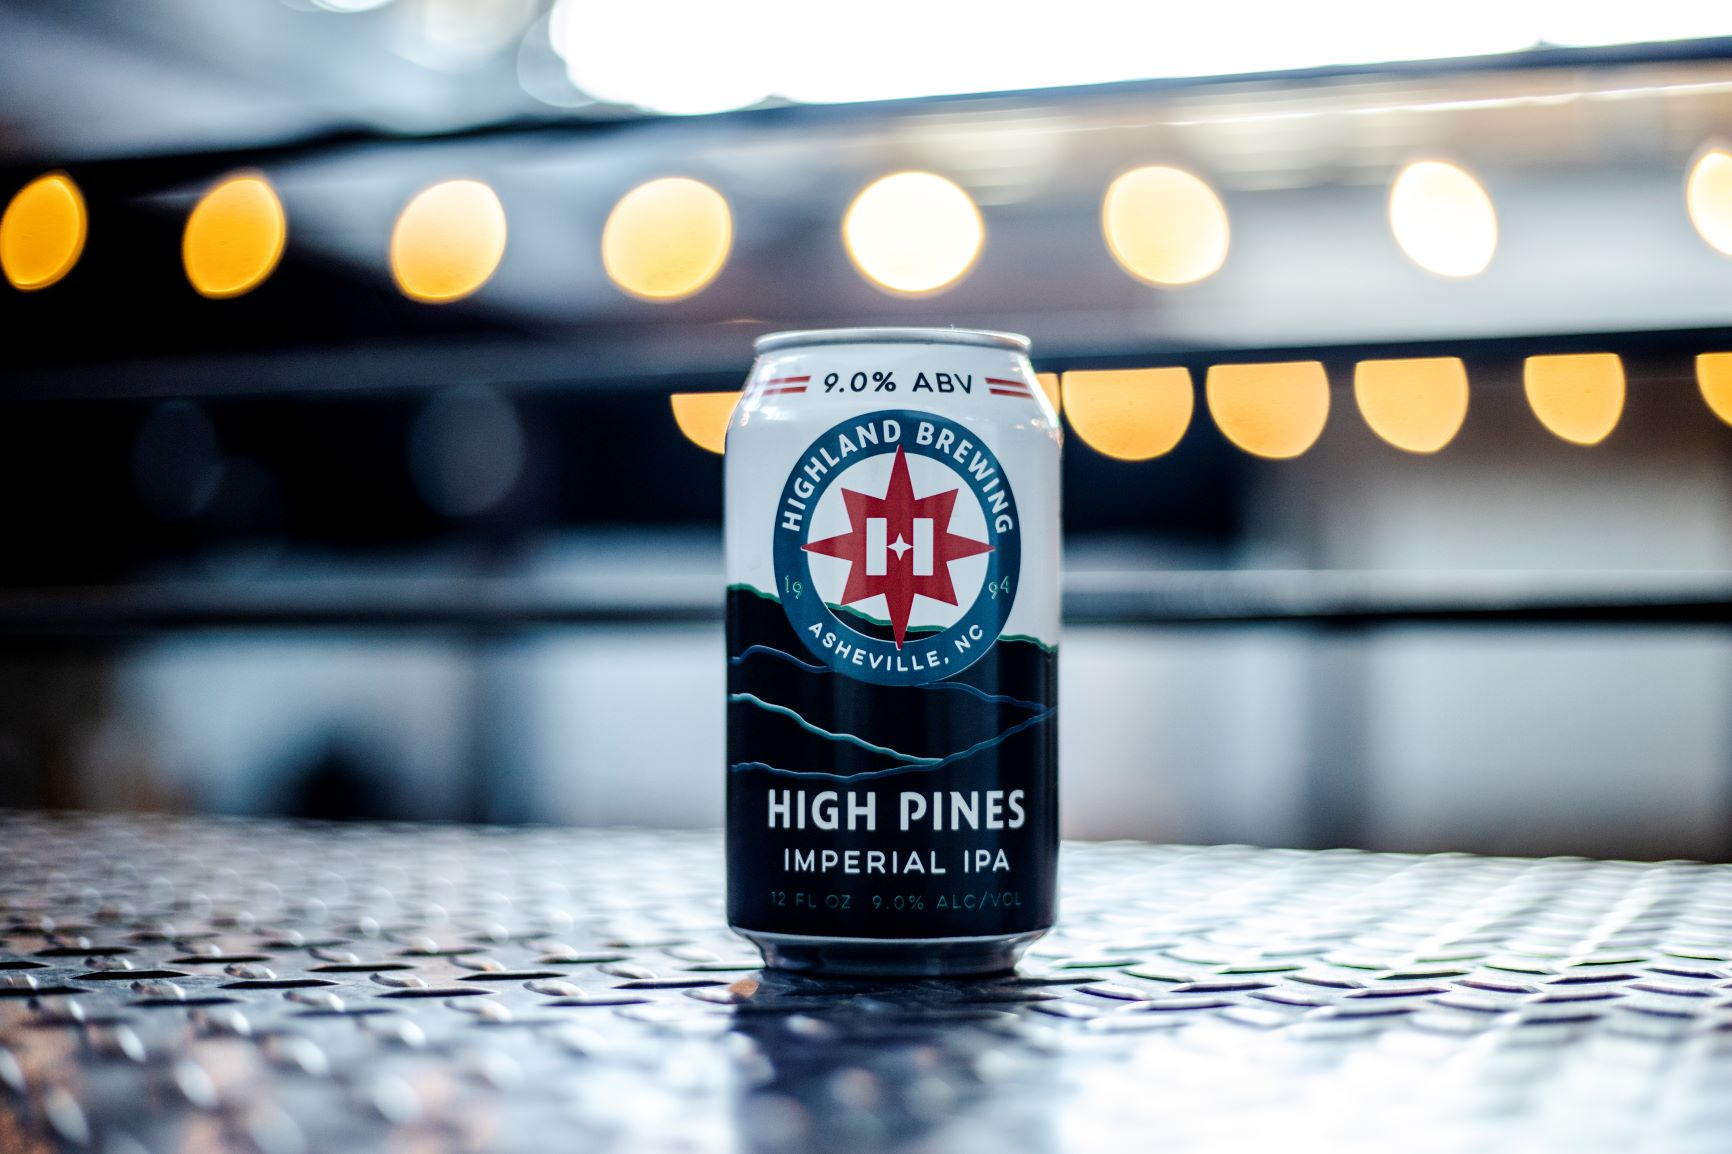 https://wearethe828.com/2021/01/21/beer-continues-to-flow-from-highlands-closed-taproom/